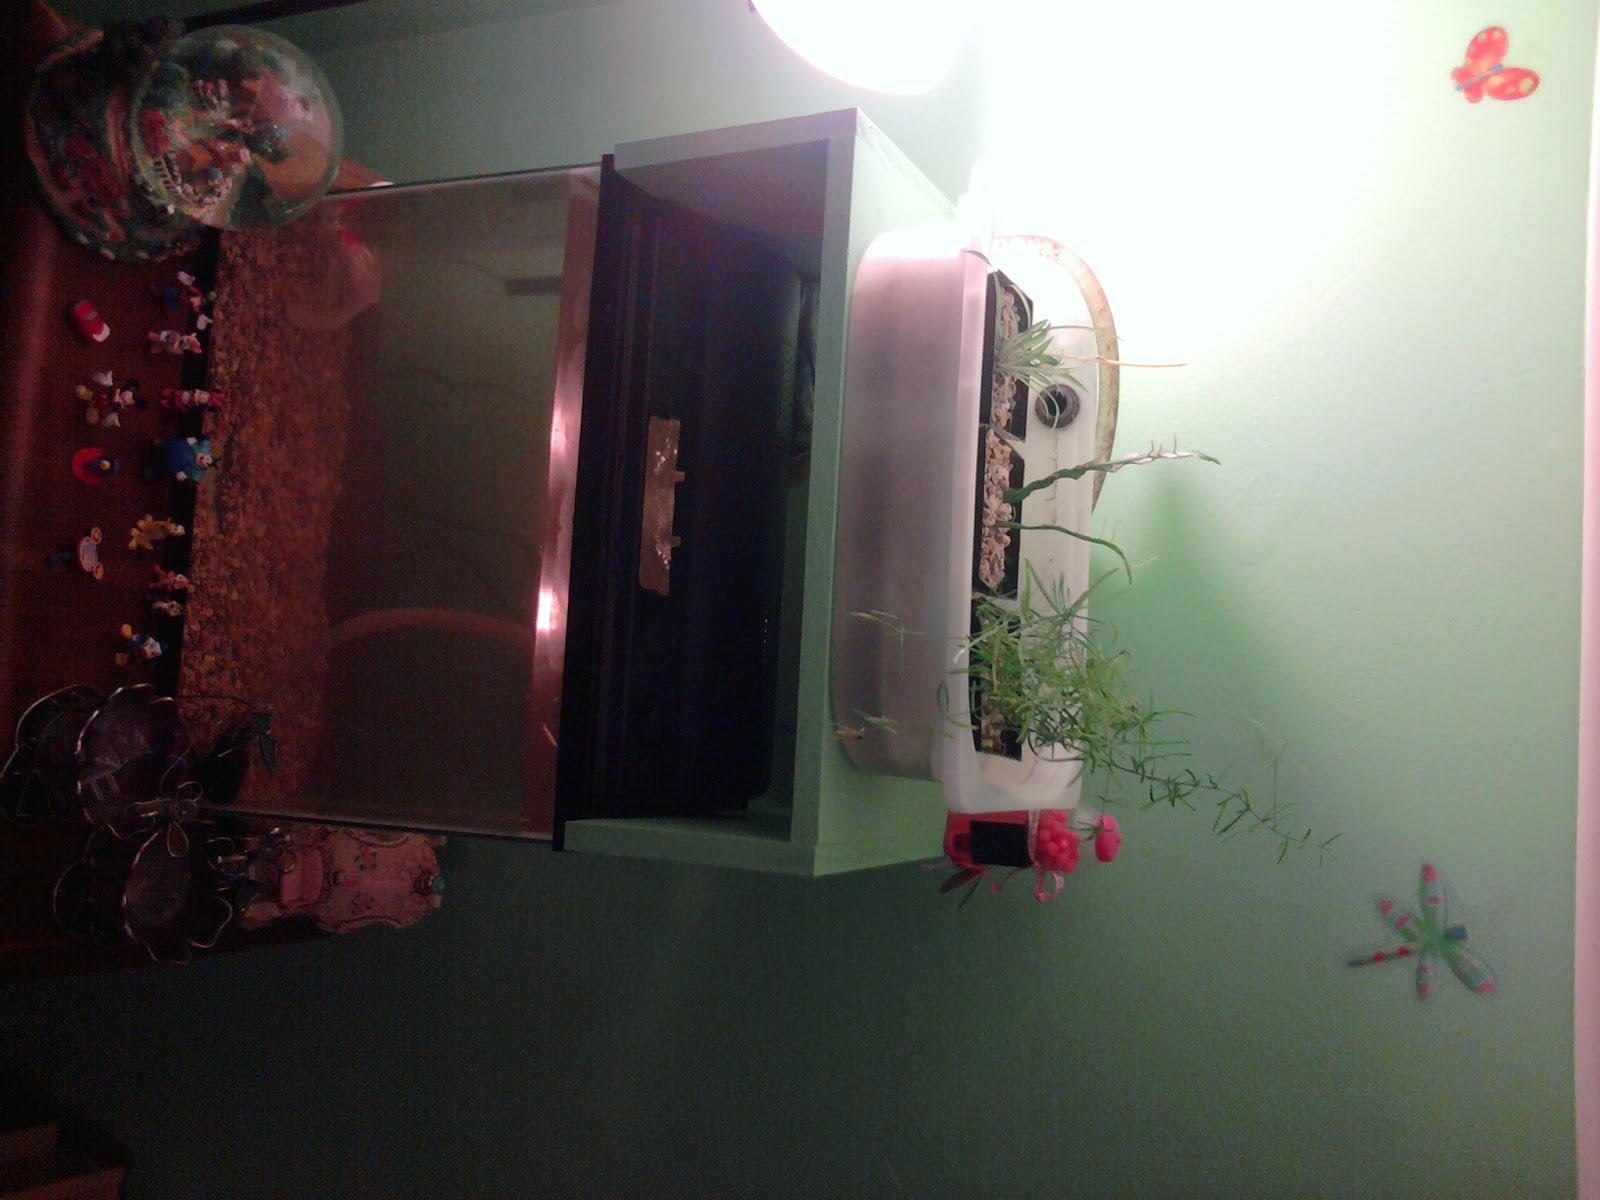 Bella got an aquaponics aquarium in her room